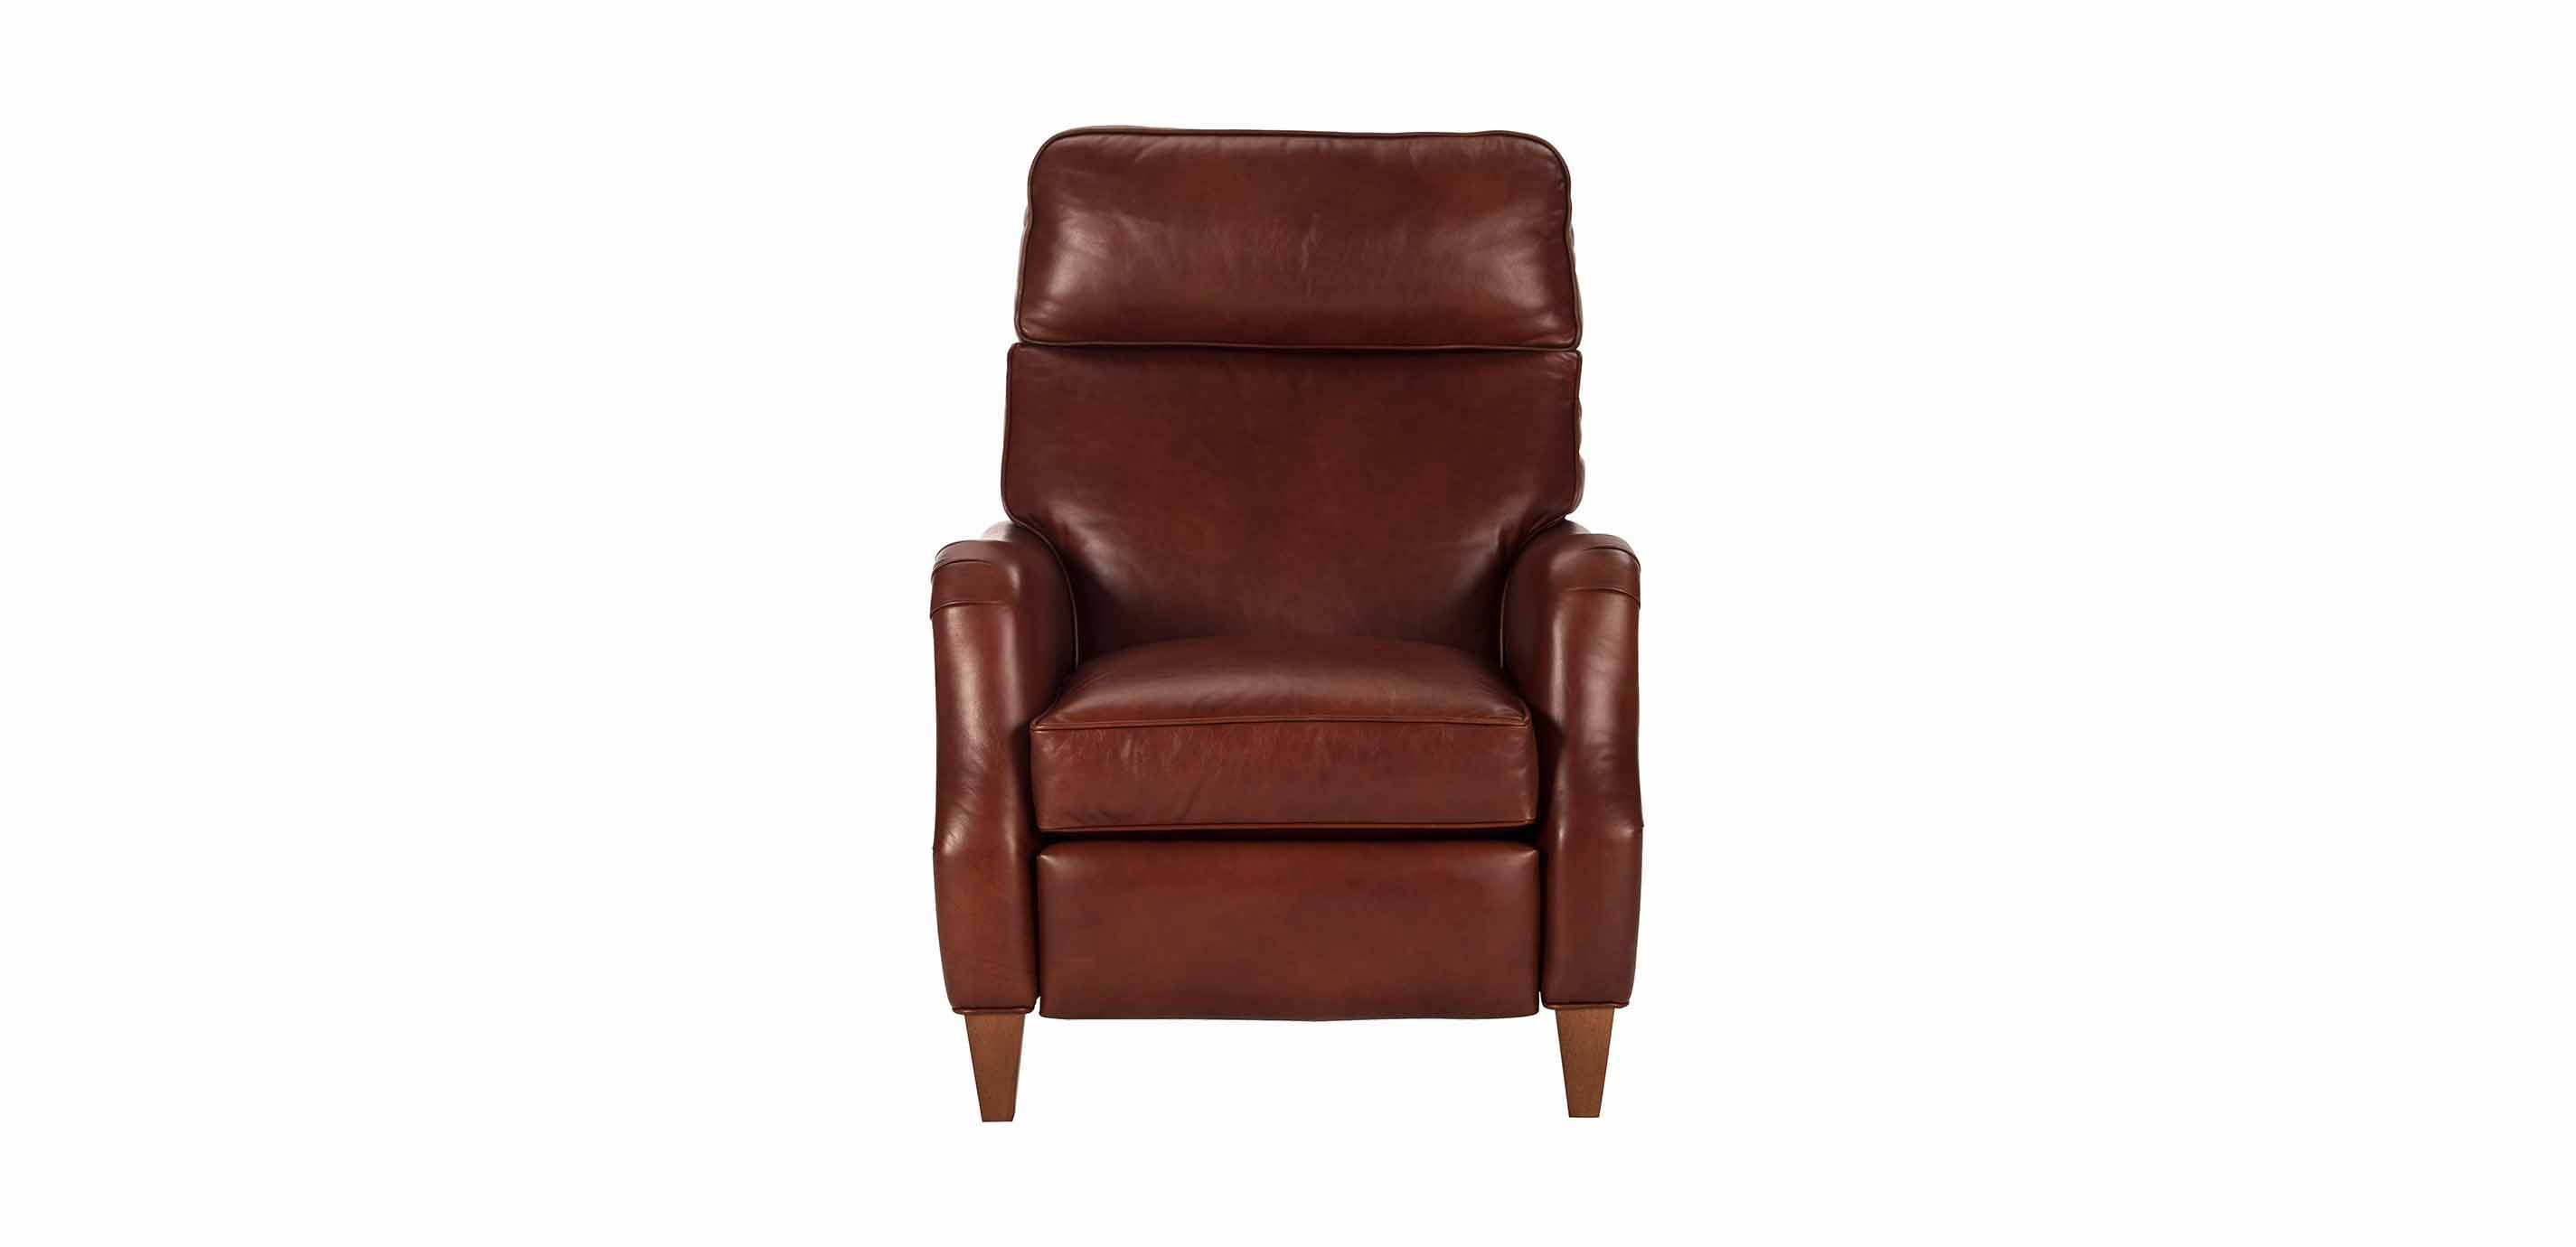 Aiden Leather Recliner Old English Saddle Recliners